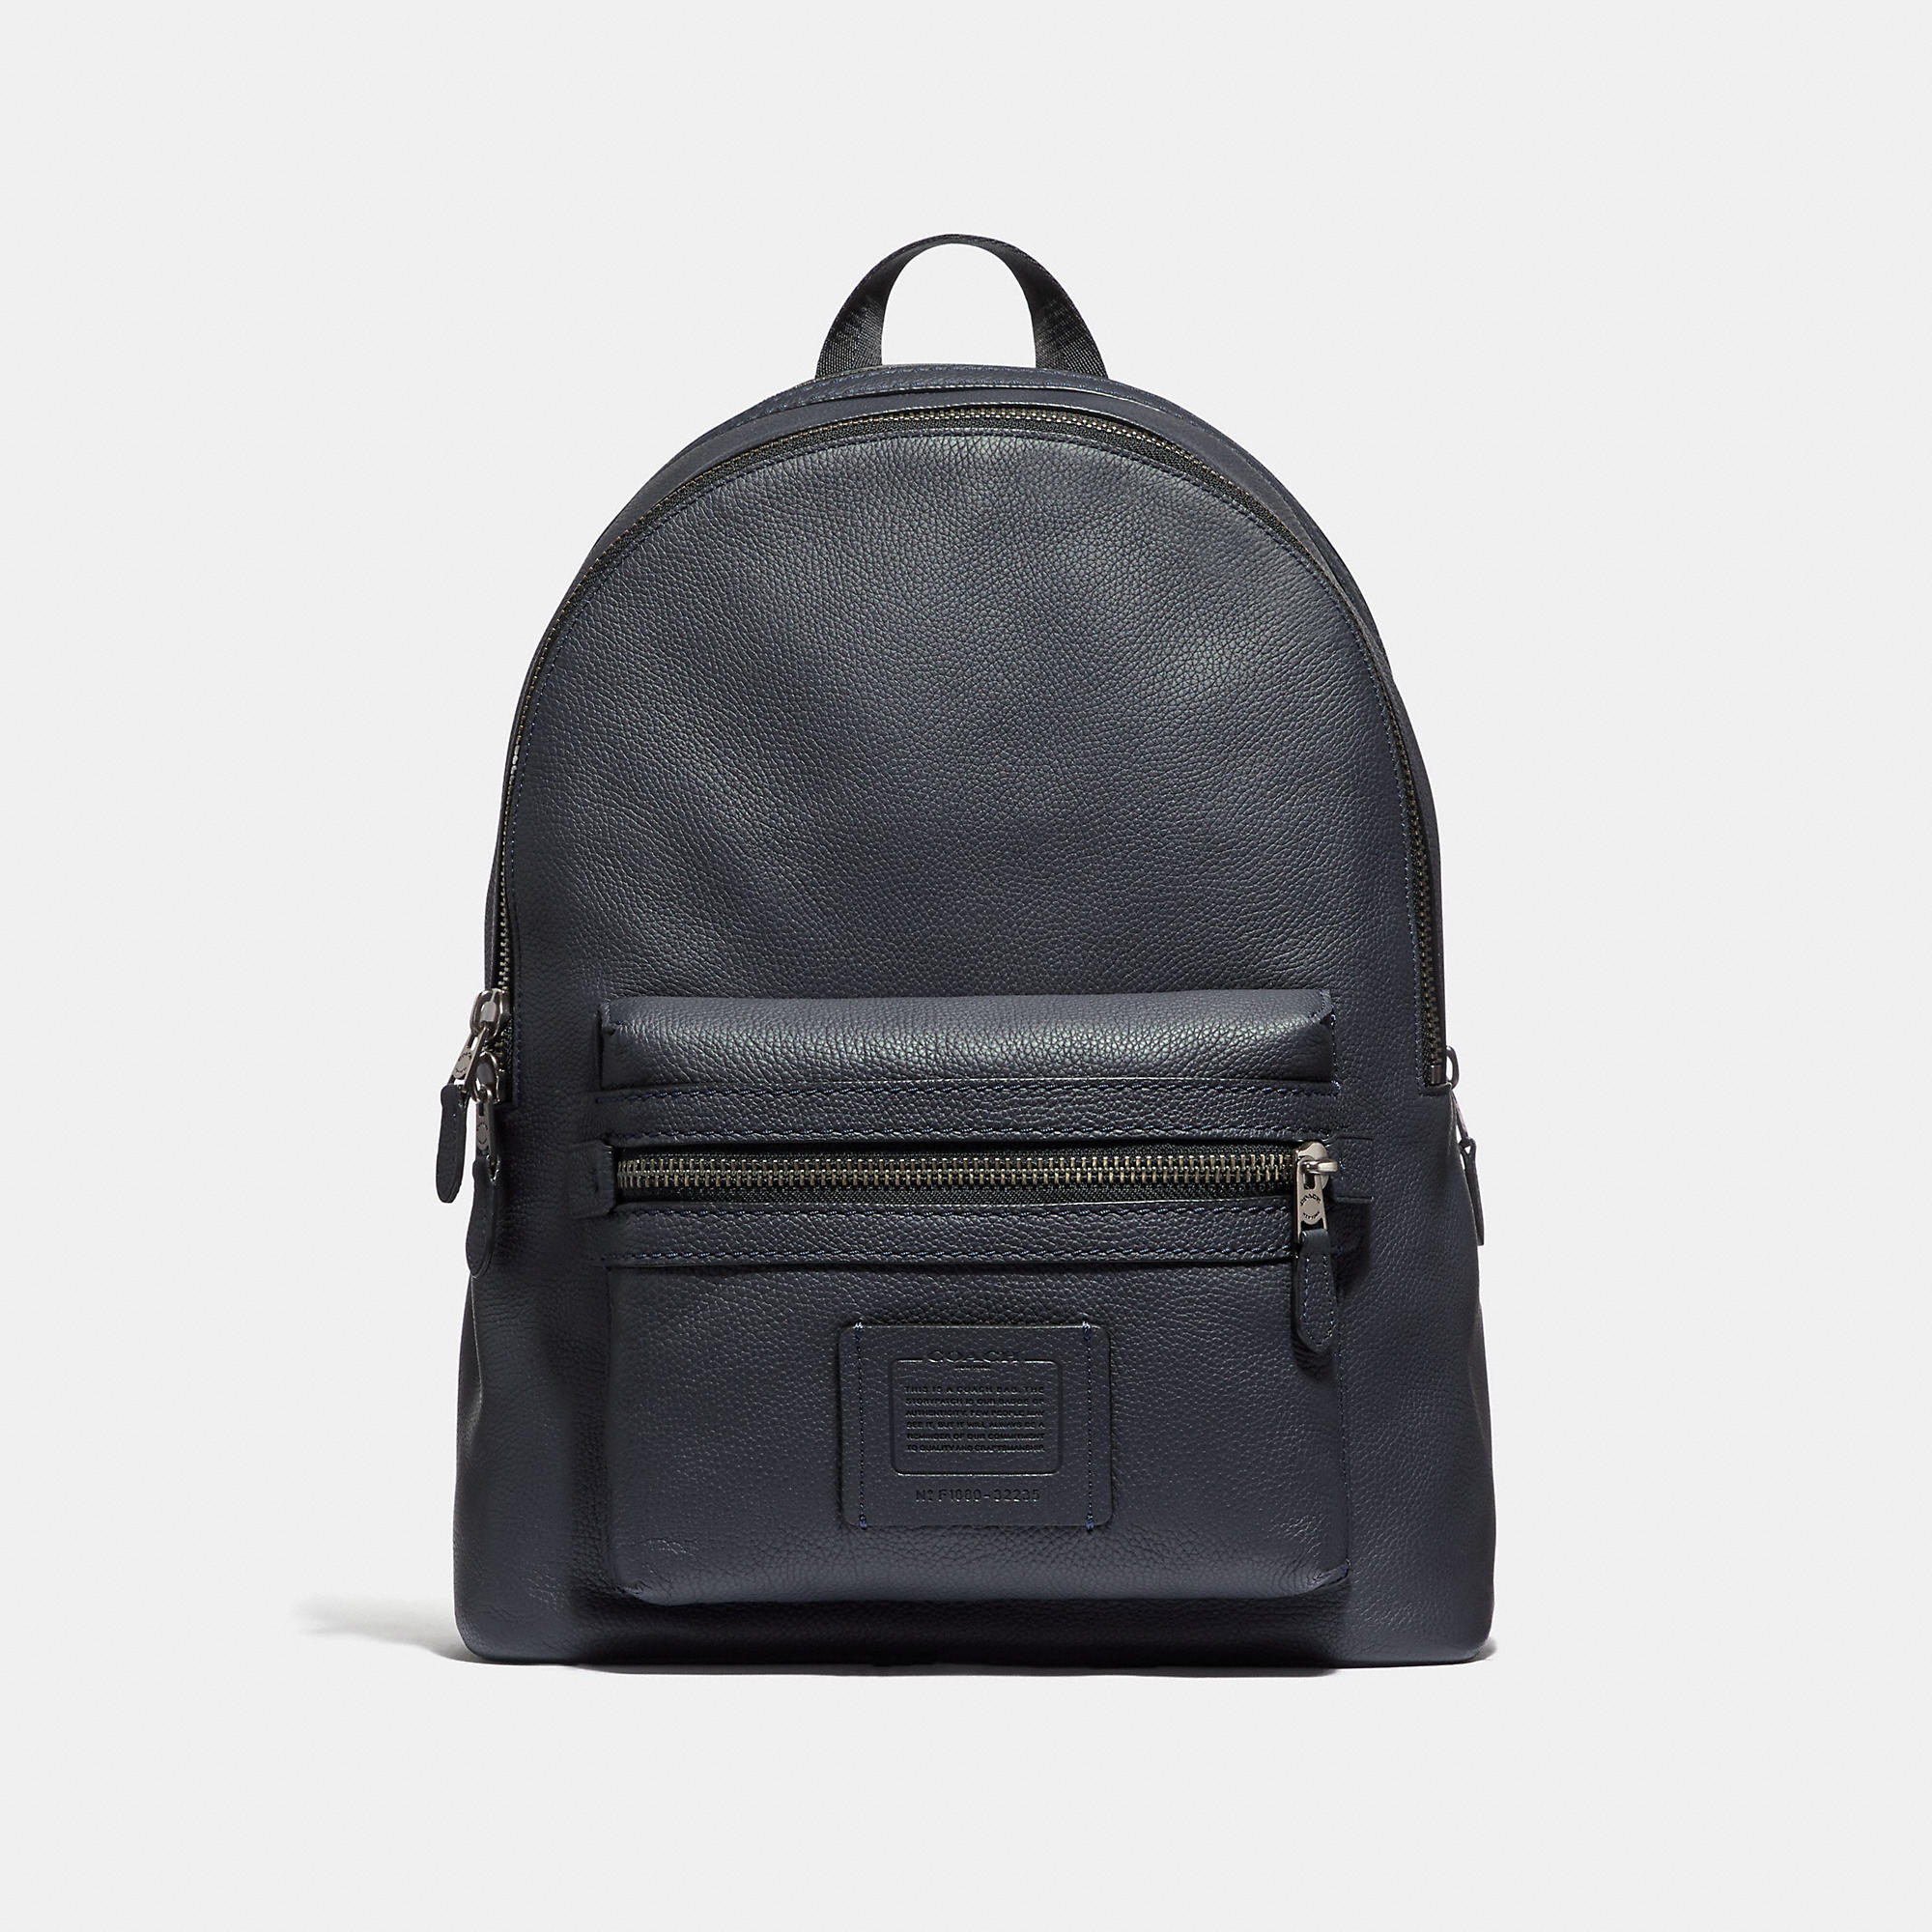 33176b0f65 Coach Academy Pebbled Leather Backpack In Midnight Navy Black Copper Finish